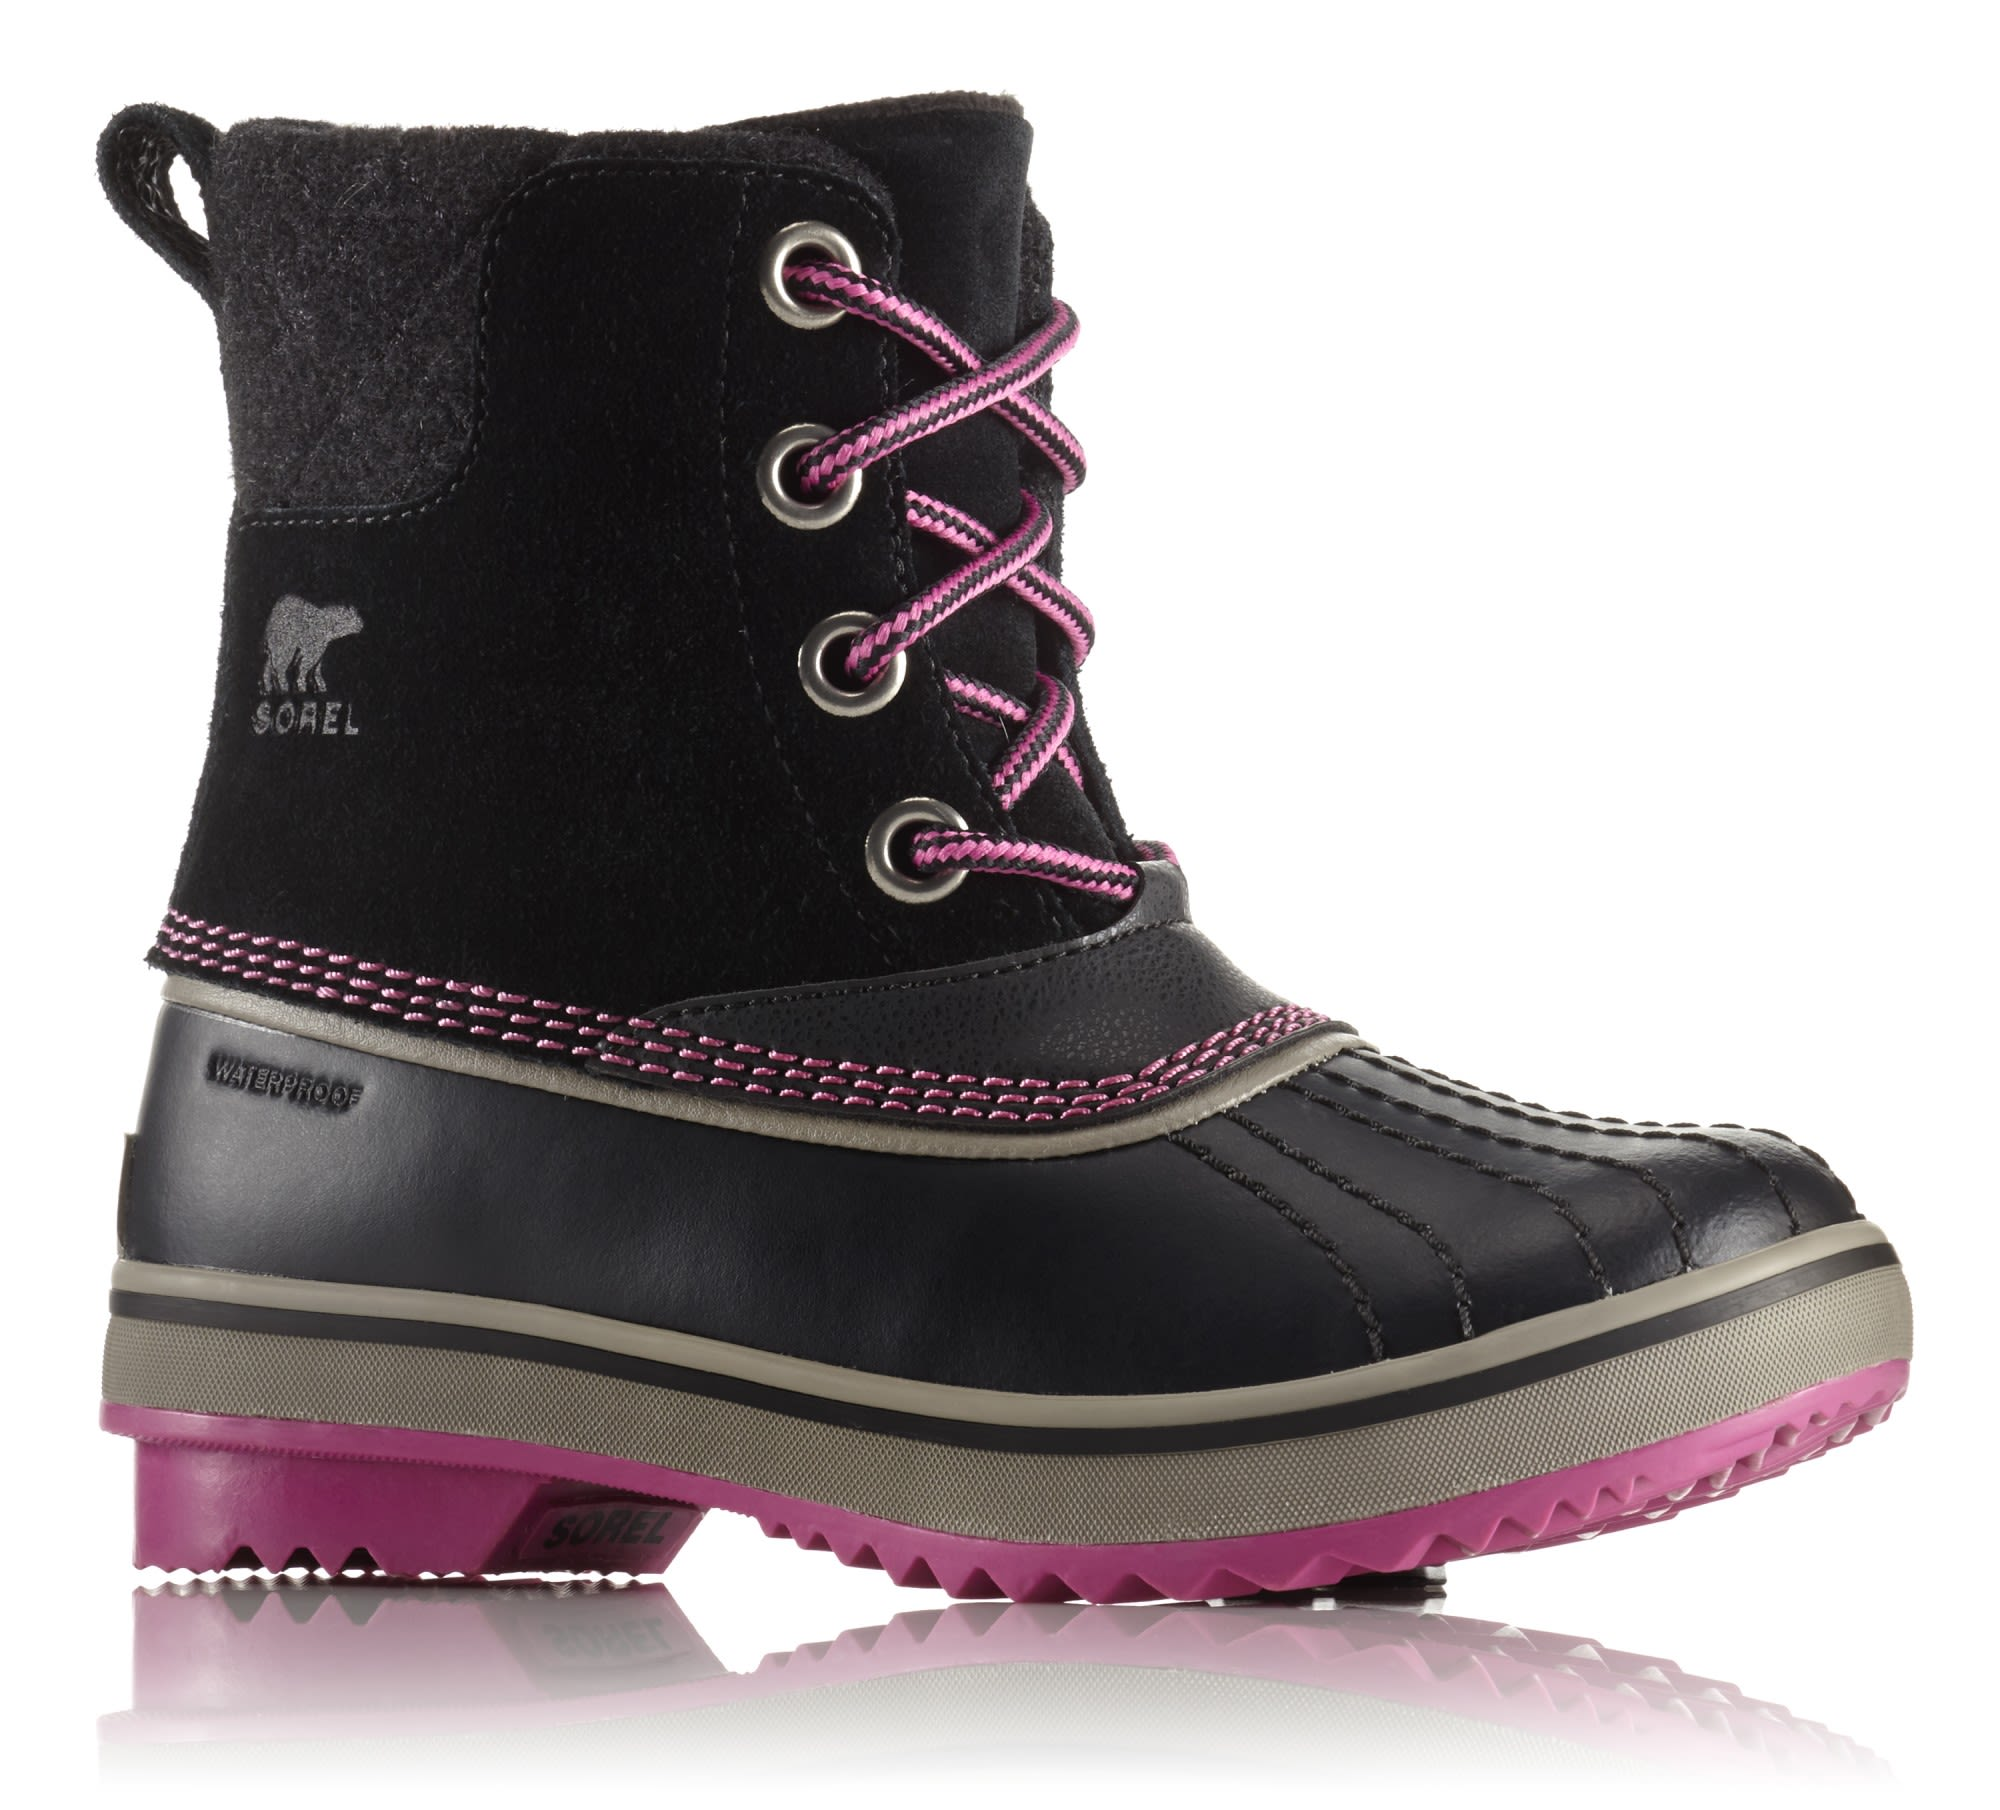 Sorel Youth Slimpack II Lace | Größe US 4 / UK 3 / EU 35,US 4.5 / UK 3.5 / EU